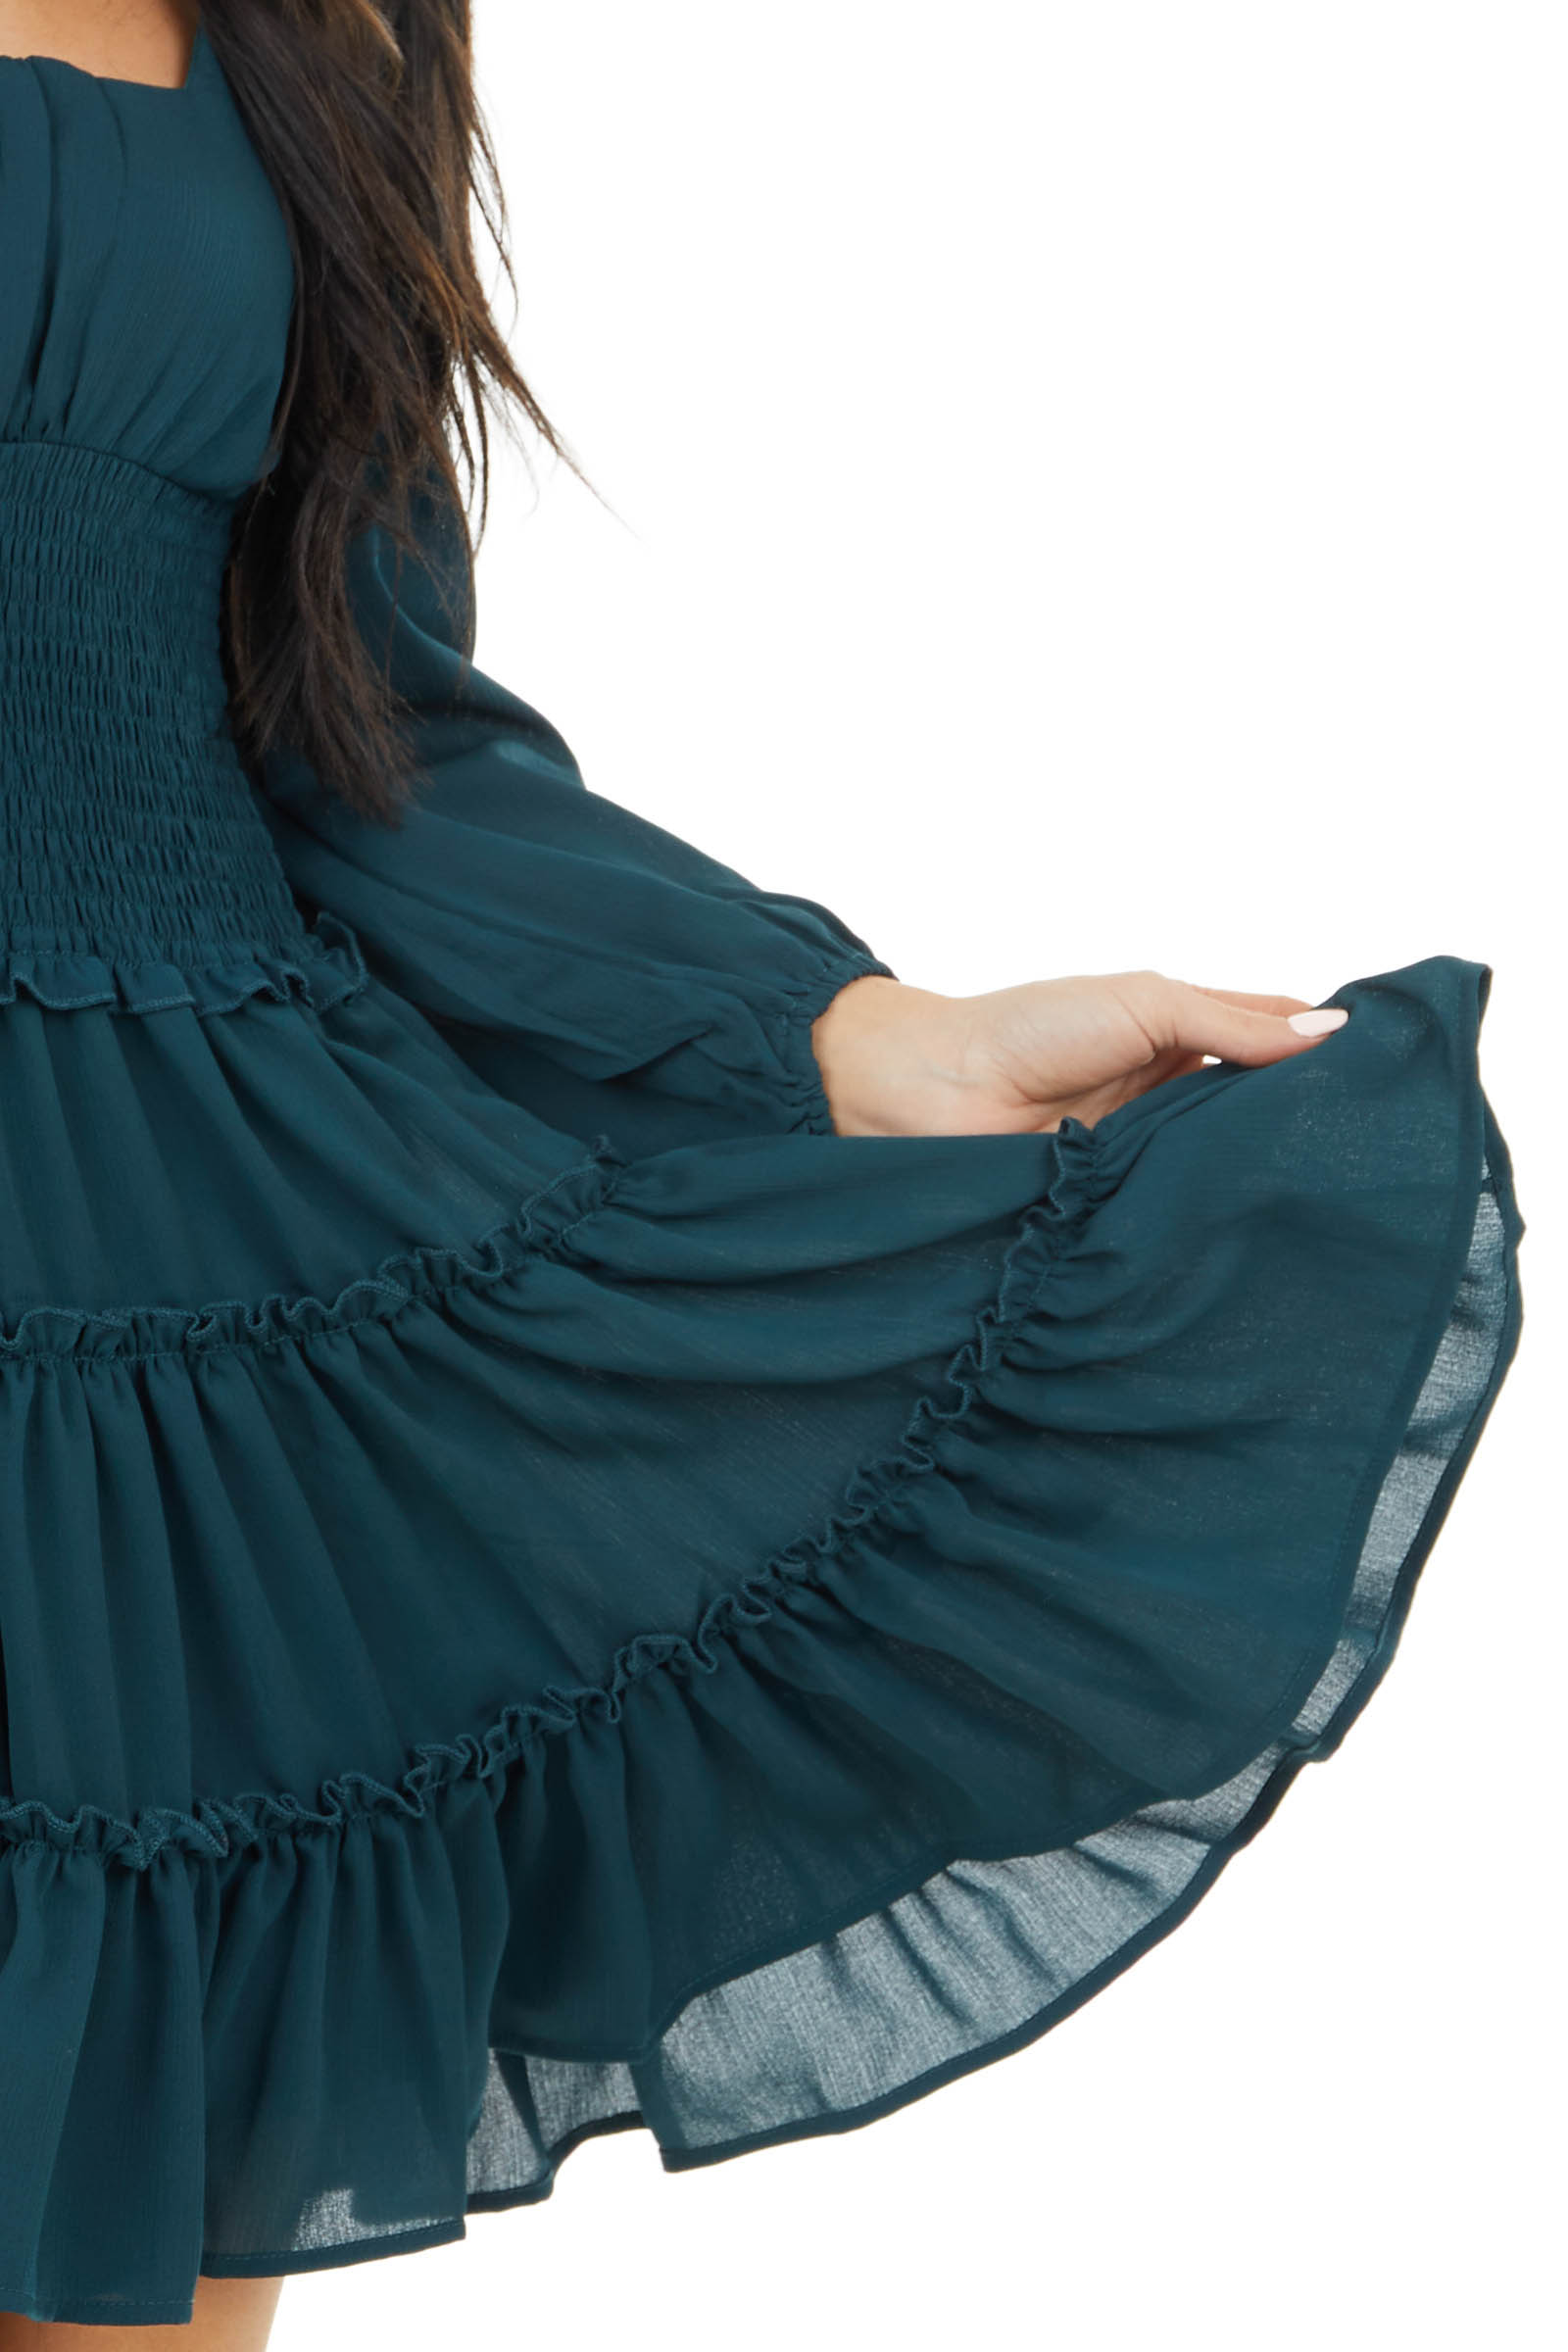 Dark Teal Tiered Dress with Smocked Waist and Puff Sleeves